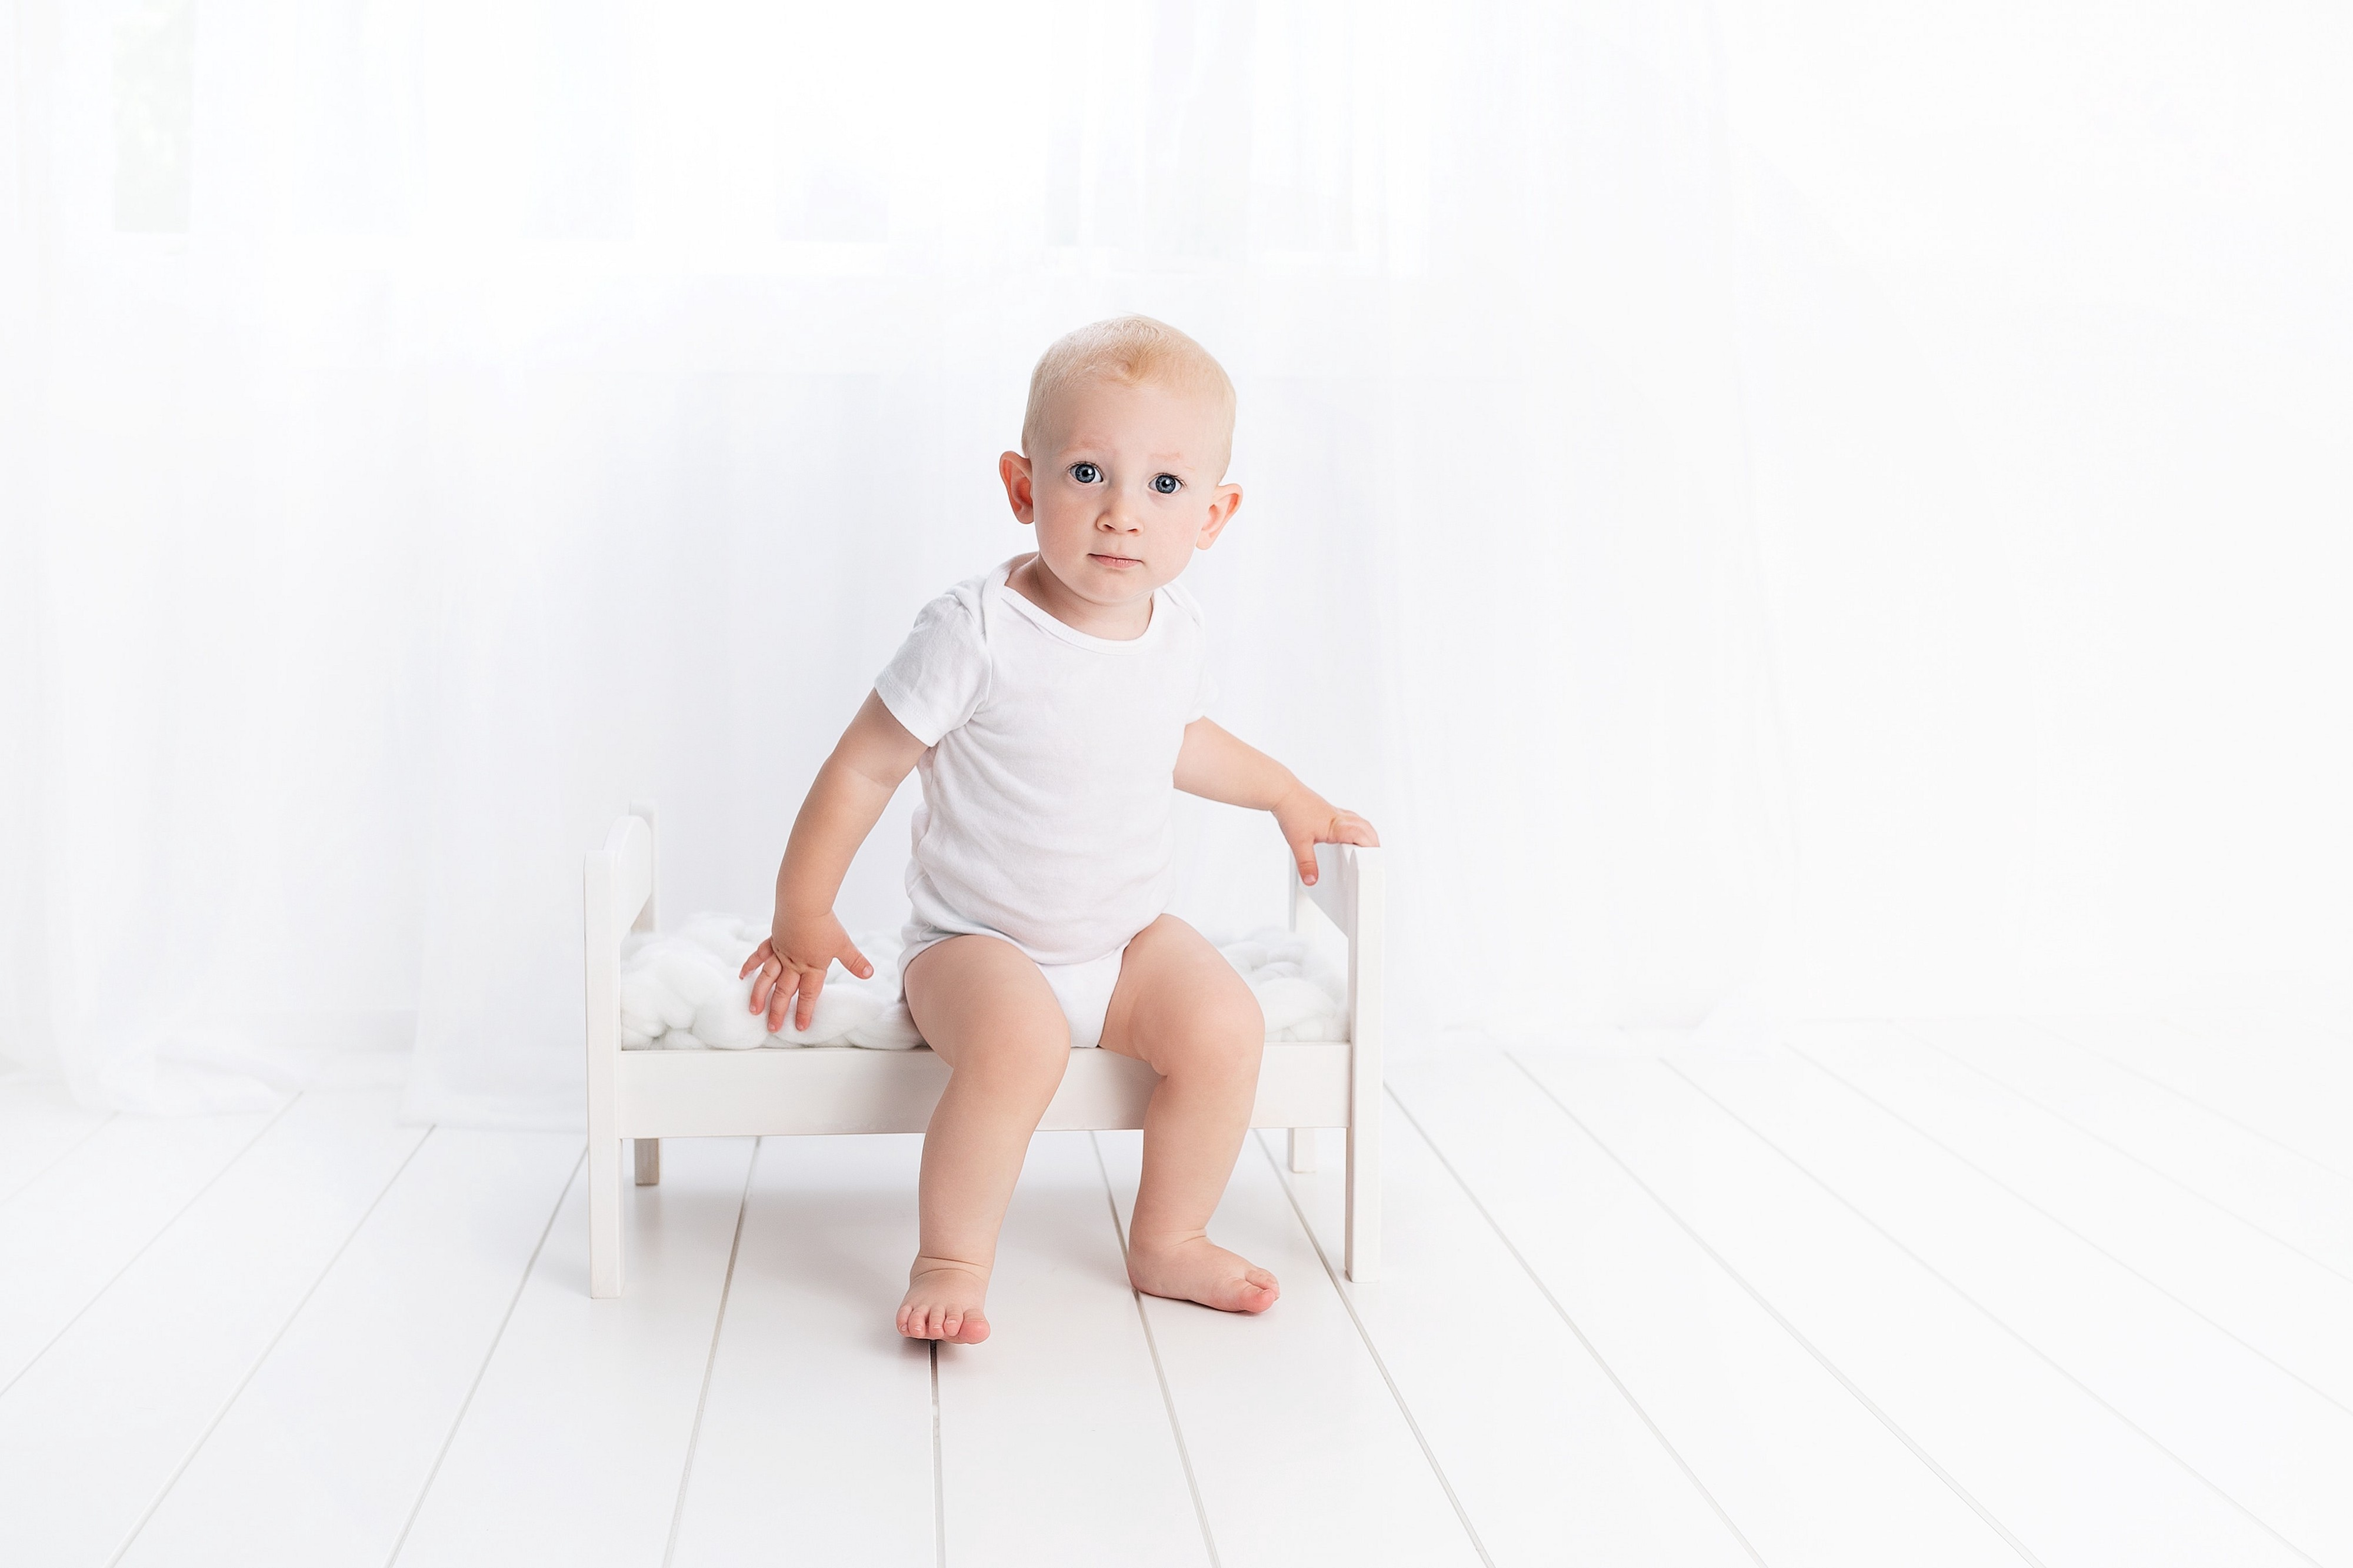 Toddler wearing a white tshirt and white underpants, sitting on a white chair in a white room